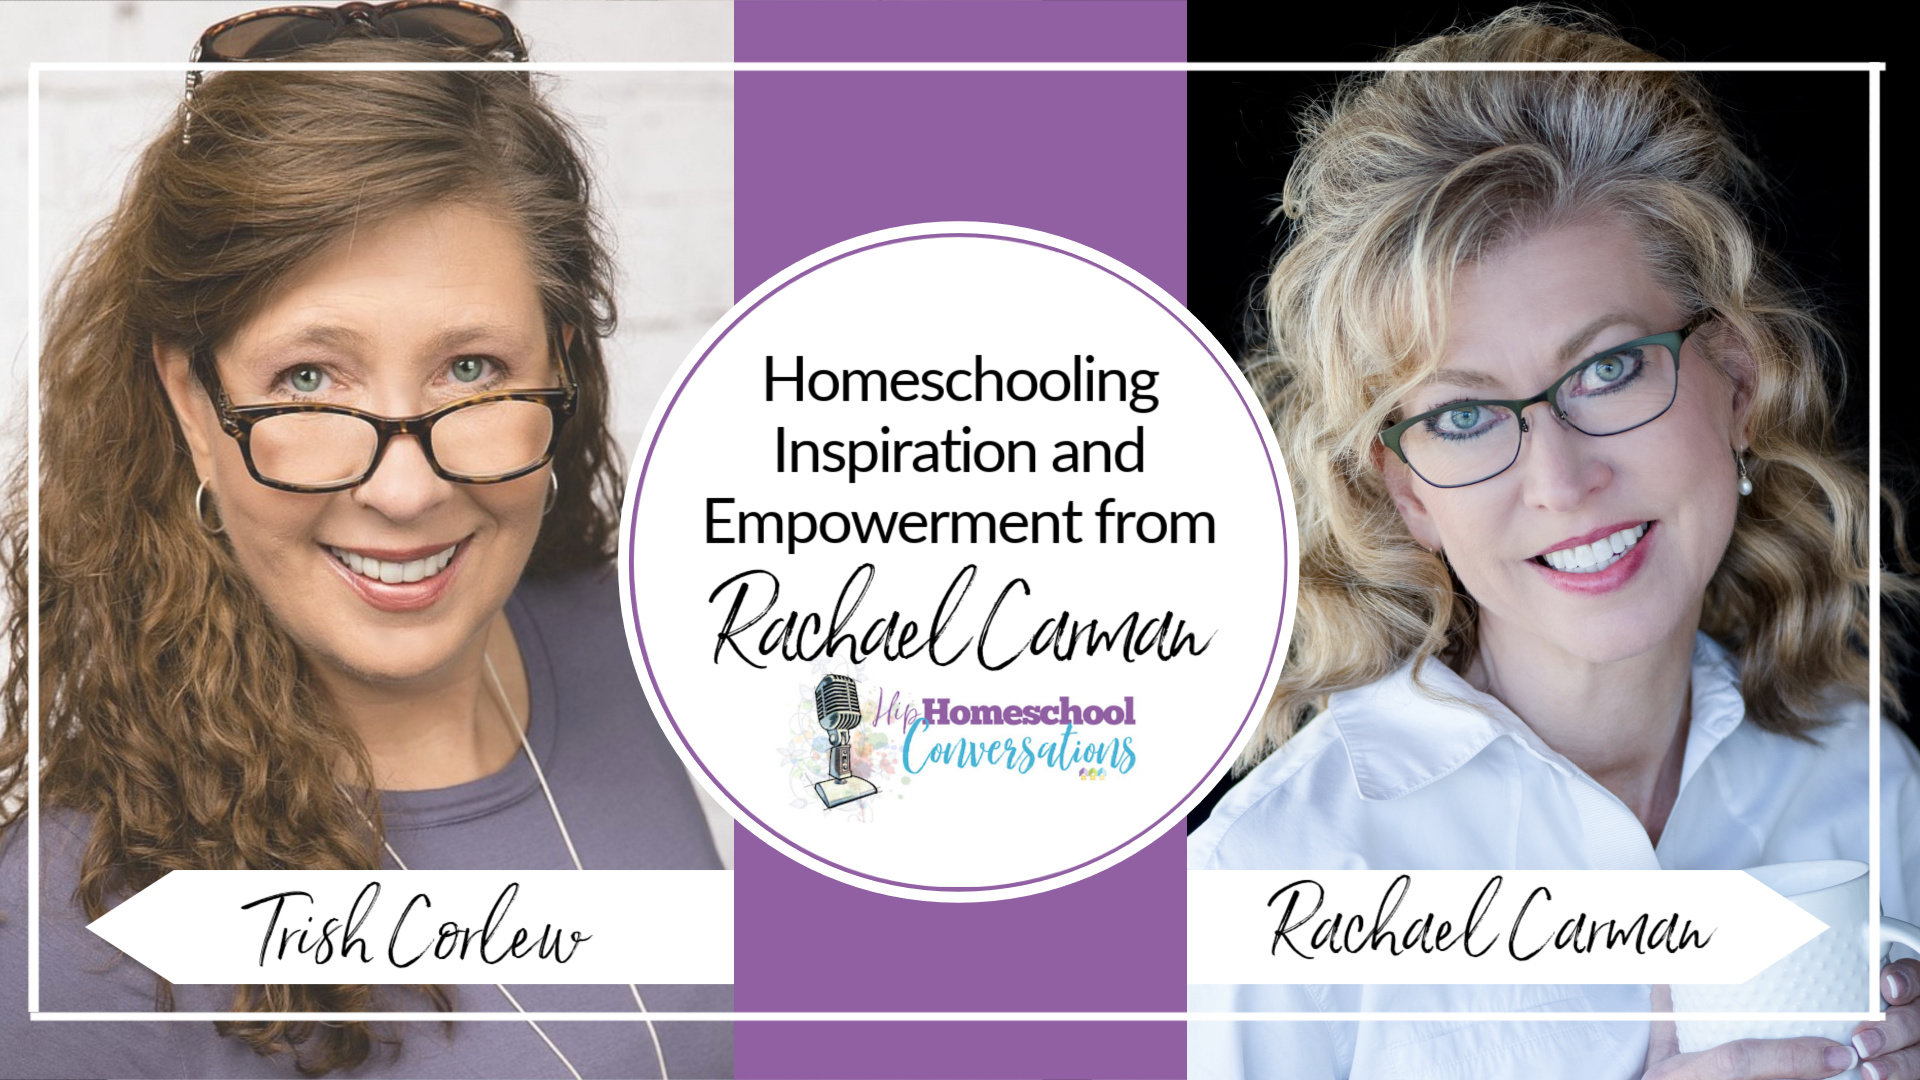 If you have ever felt inadequate to homeschool or just uninterested, join Trish as she interviews Rachael Carman. They discuss everything from butterflies to the Bible to give Homeschooling Inspiration and Empowerment.